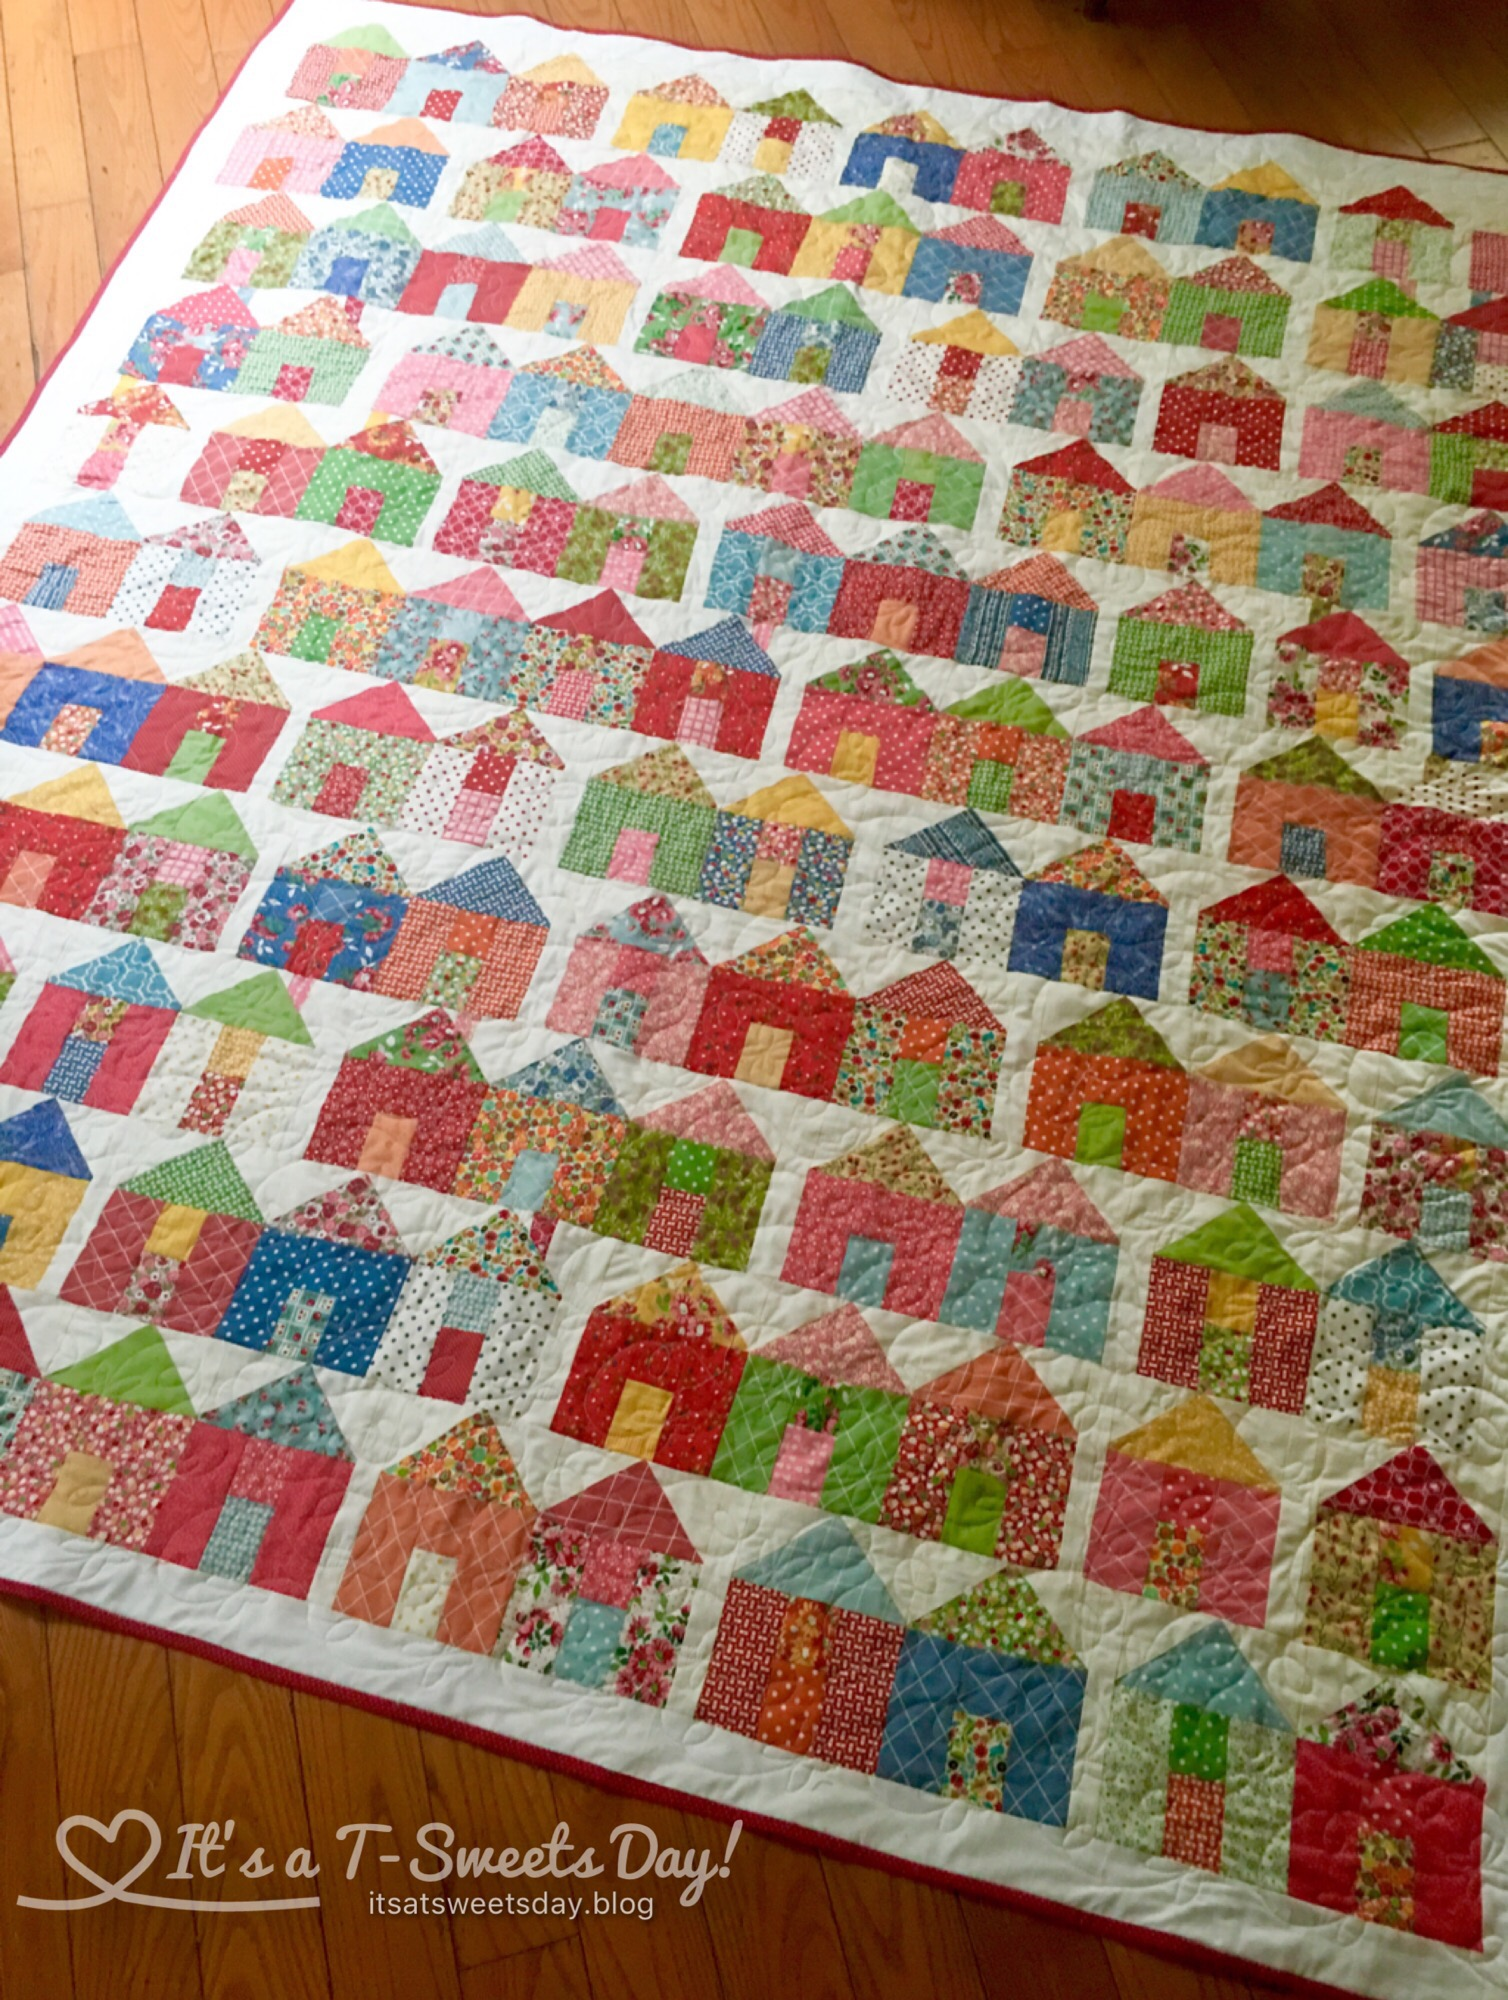 Village Quilt – It's a T-Sweets day! : village quilts - Adamdwight.com